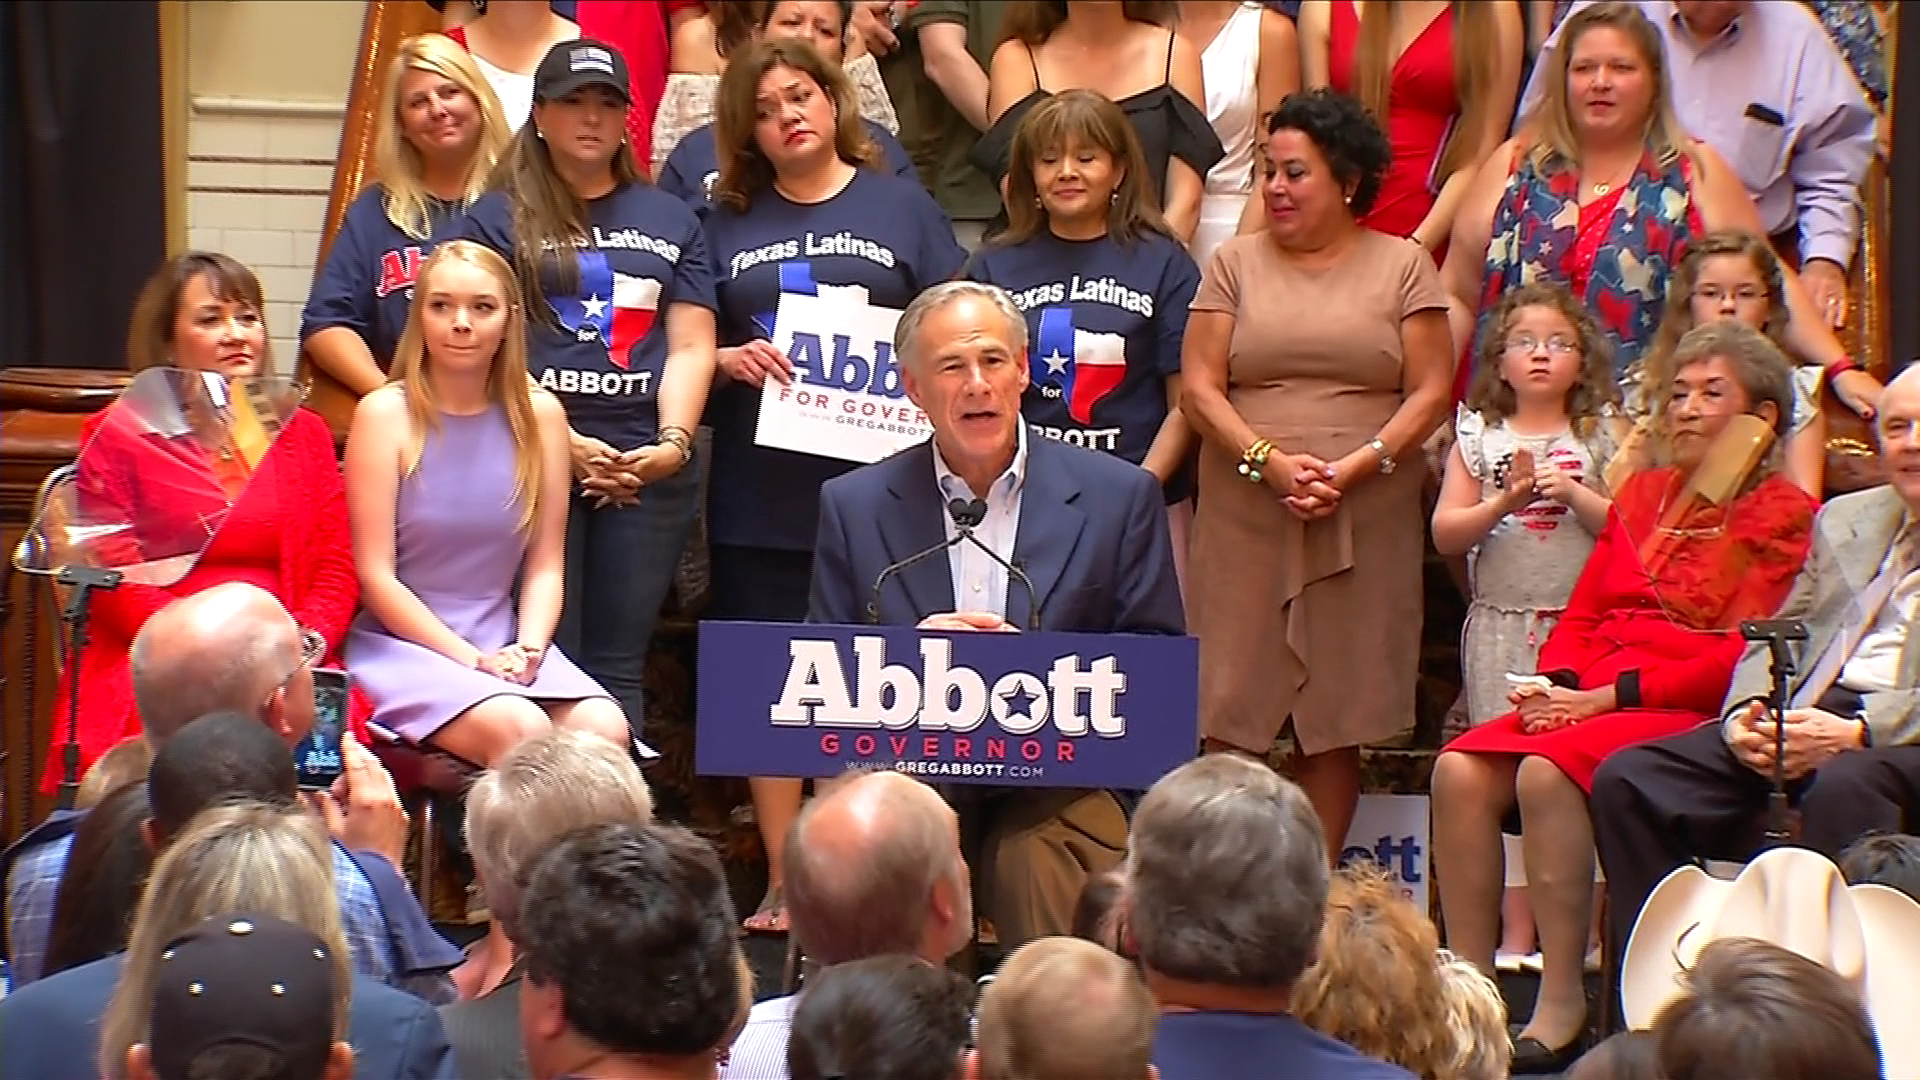 Republican Texas Gov. Greg Abbott has launched his re-election campaign with no challengers yet in sight and a new immigration crackdown that could test Hispanic voters in 2018. (CBS Austin)